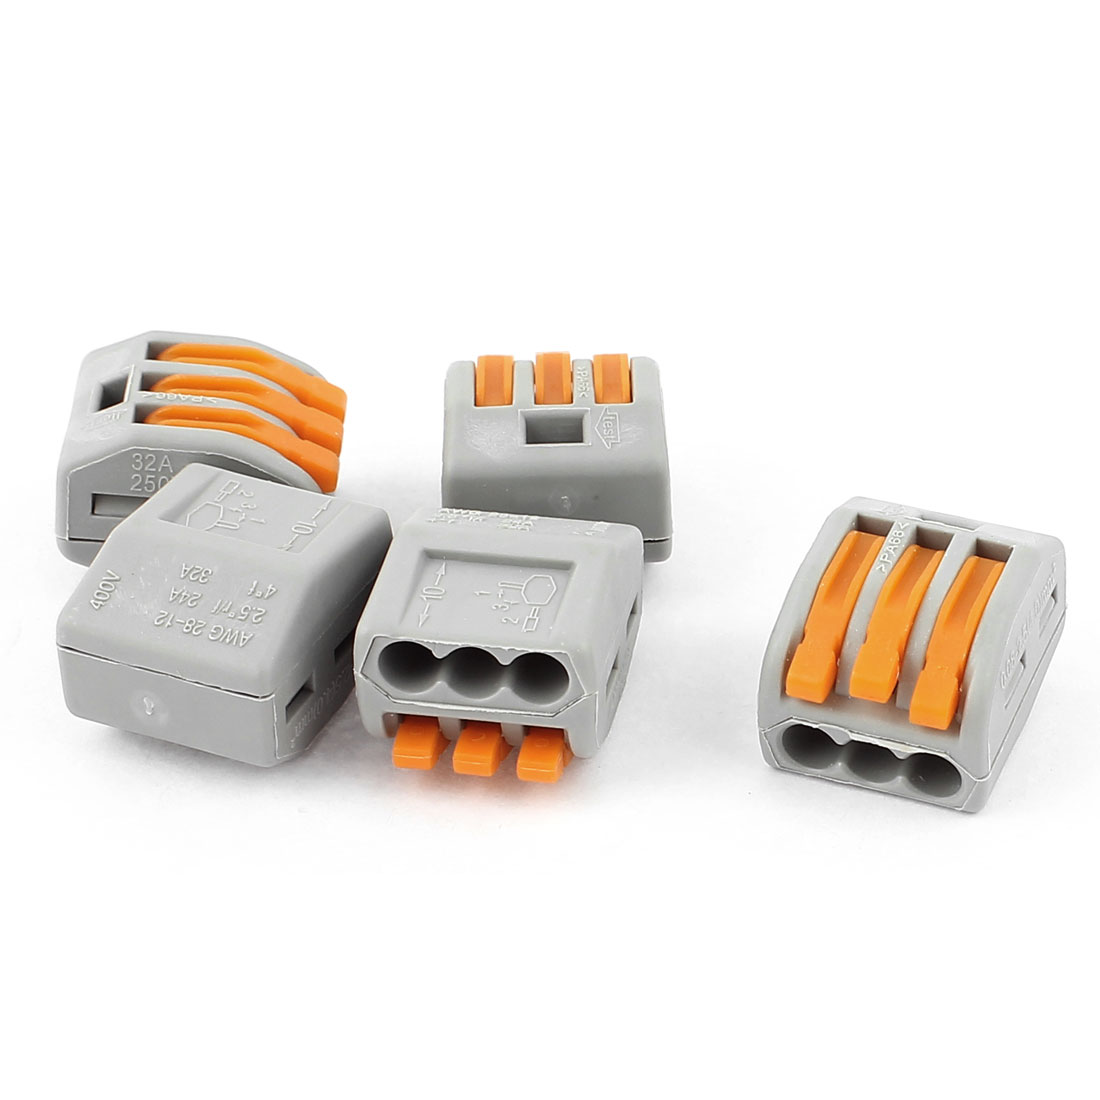 5 Pcs AC 250V 32A Fast Cable Push in 3 Port Building Wire Connector Safe Terminal Block